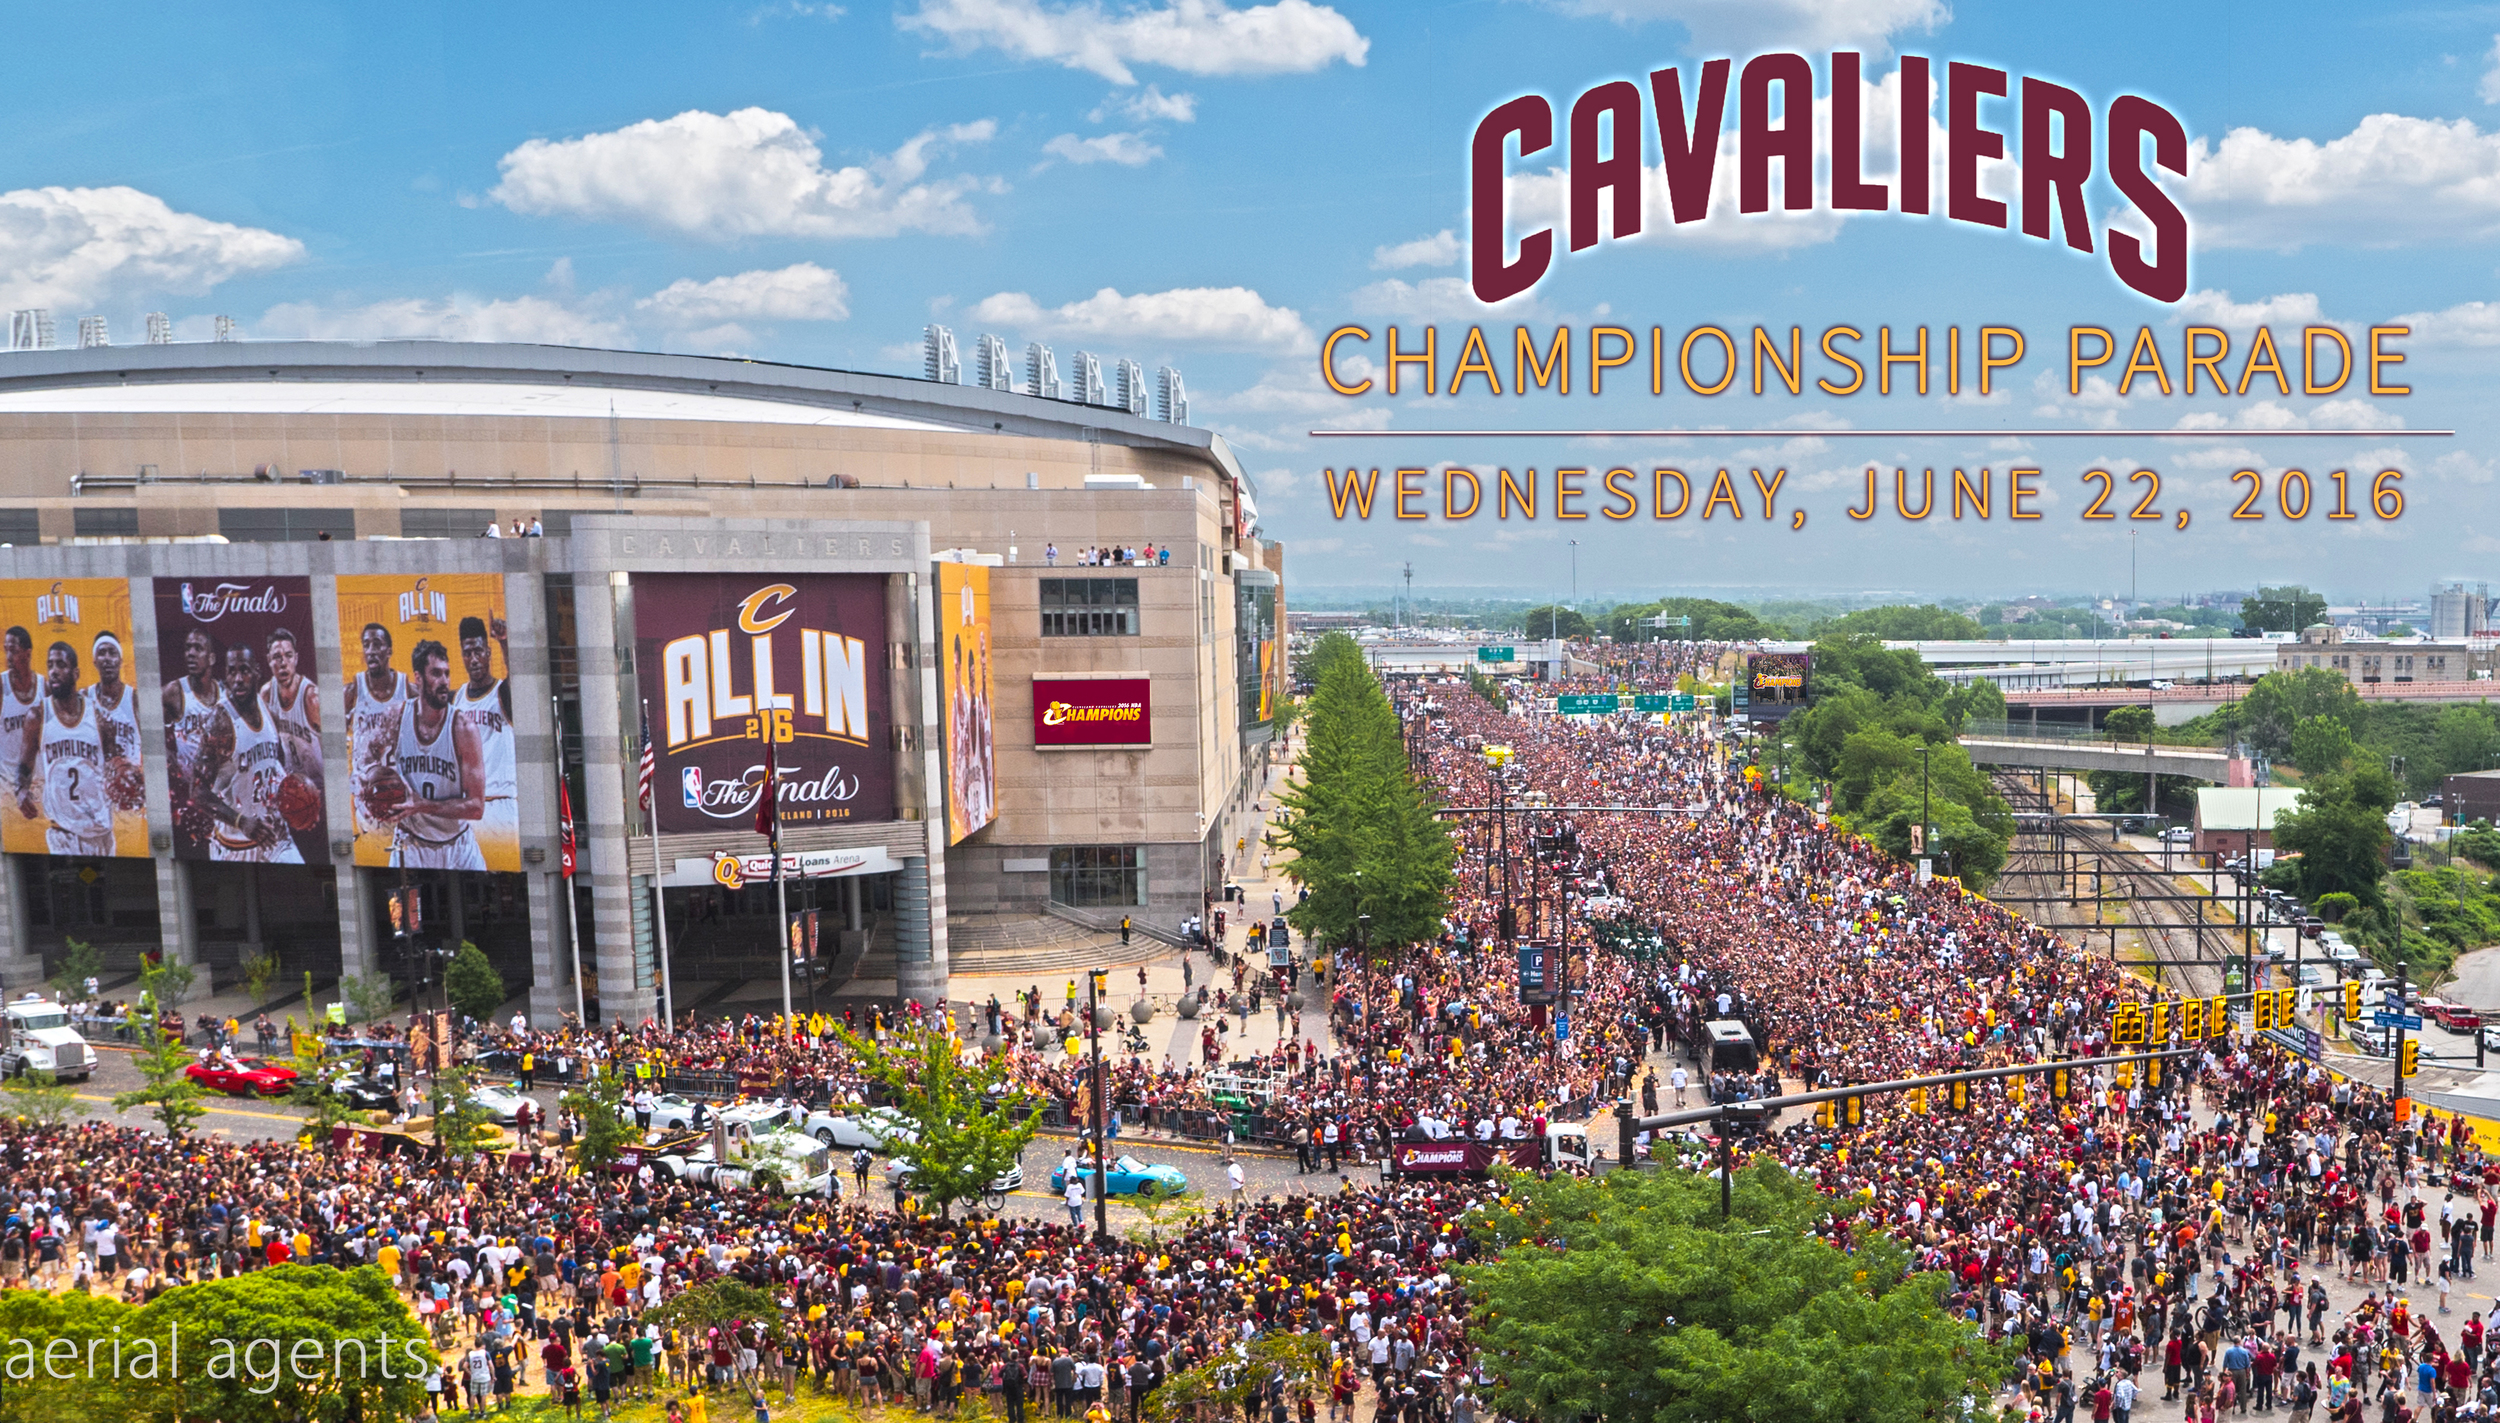 Opening of the 2016 Cavs Championship Parade